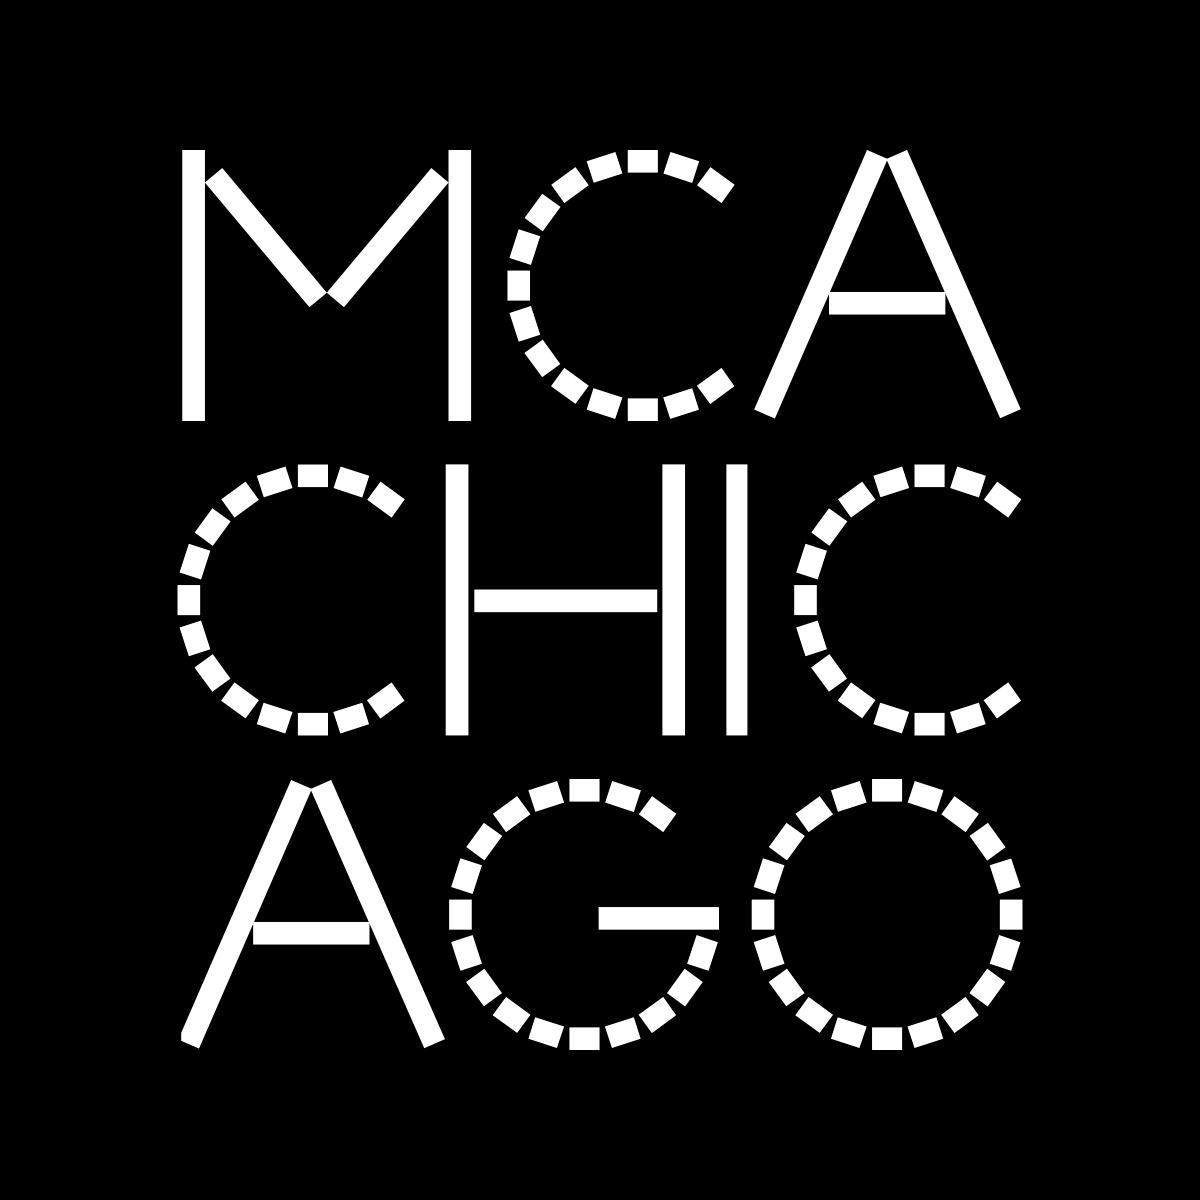 The new MCA Chicago logo is featured here, with white font on a black backdrop. The new font is angular, with a sequence of straight bars used to create what would otherwise be rounded edges.